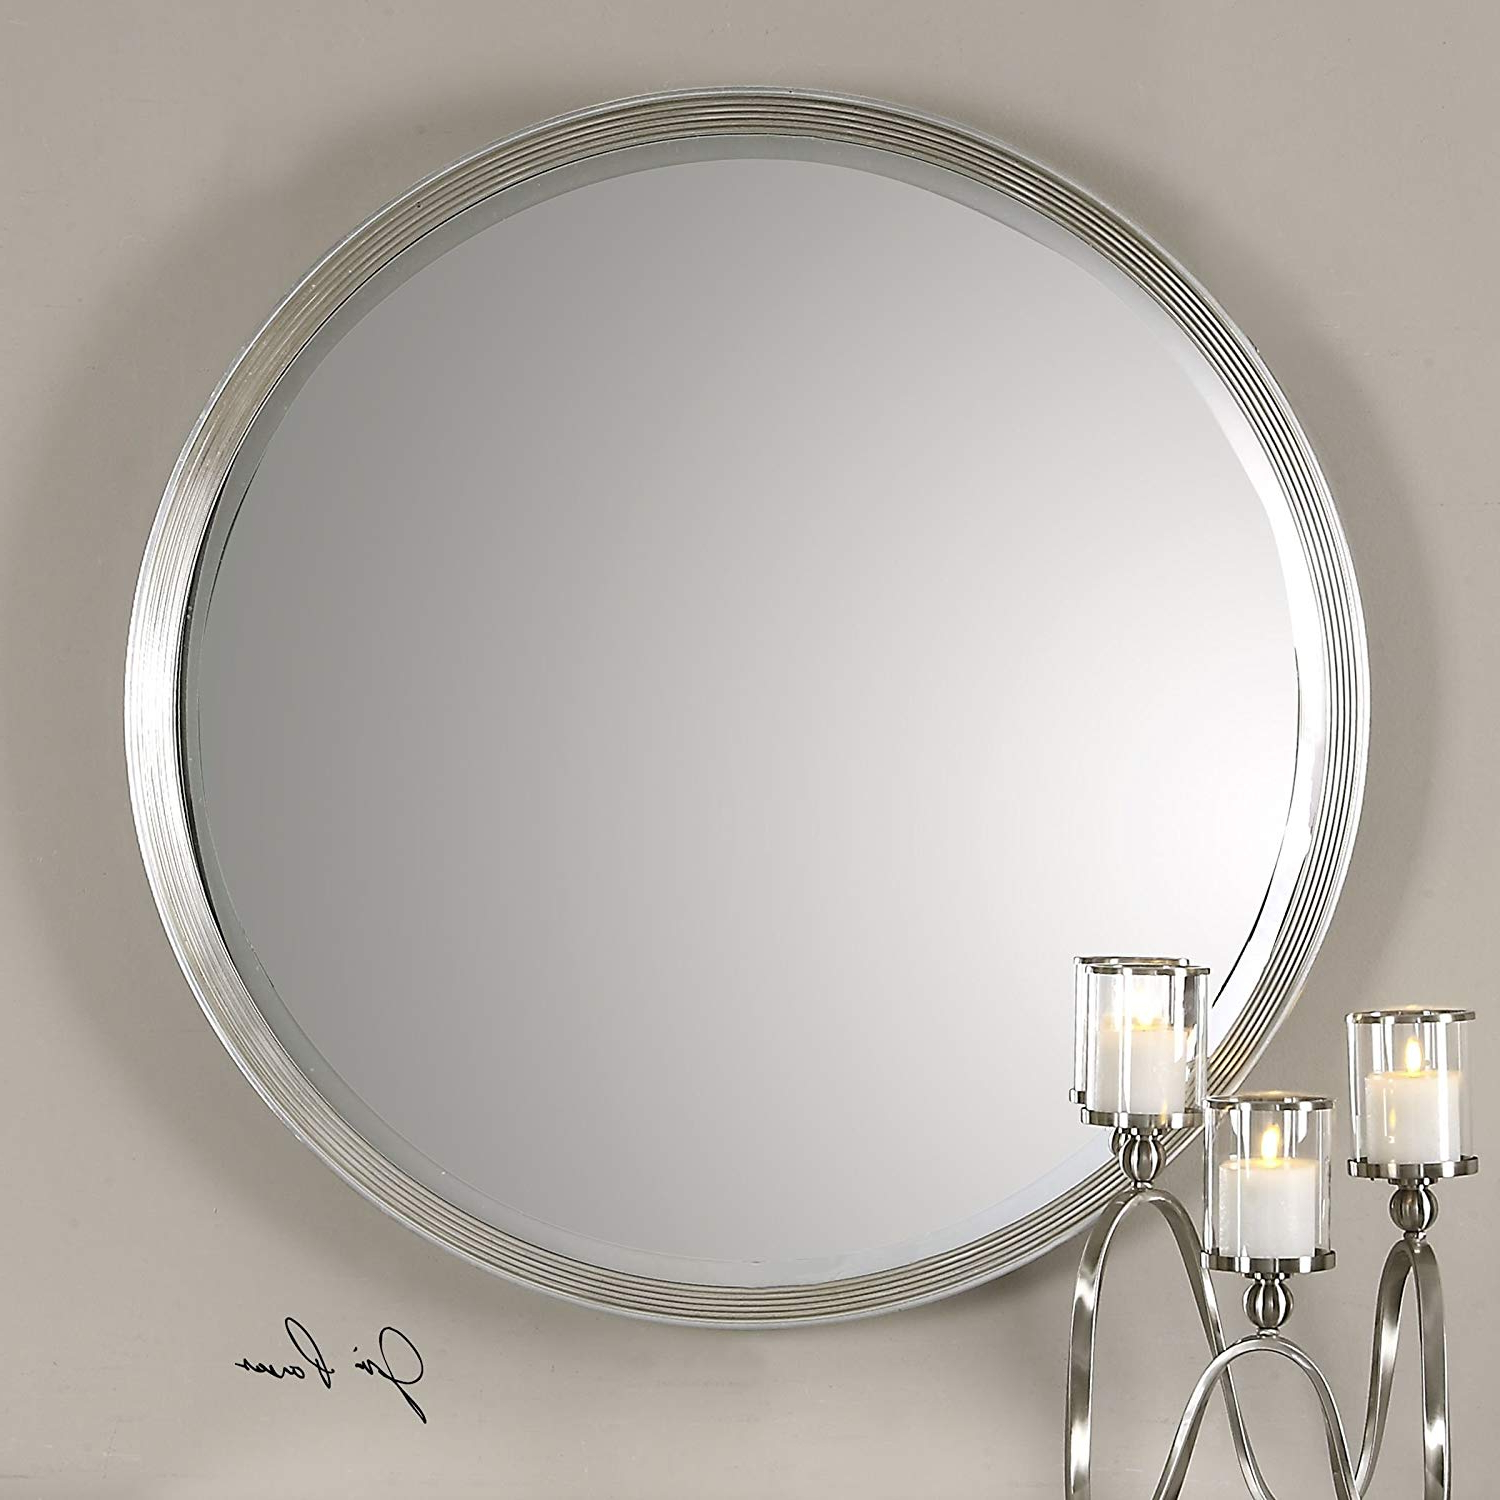 Round Silver Wall Mirrors Pertaining To Trendy Amazon: My Swanky Home Classic Round Silver Wall Mirror (View 4 of 20)